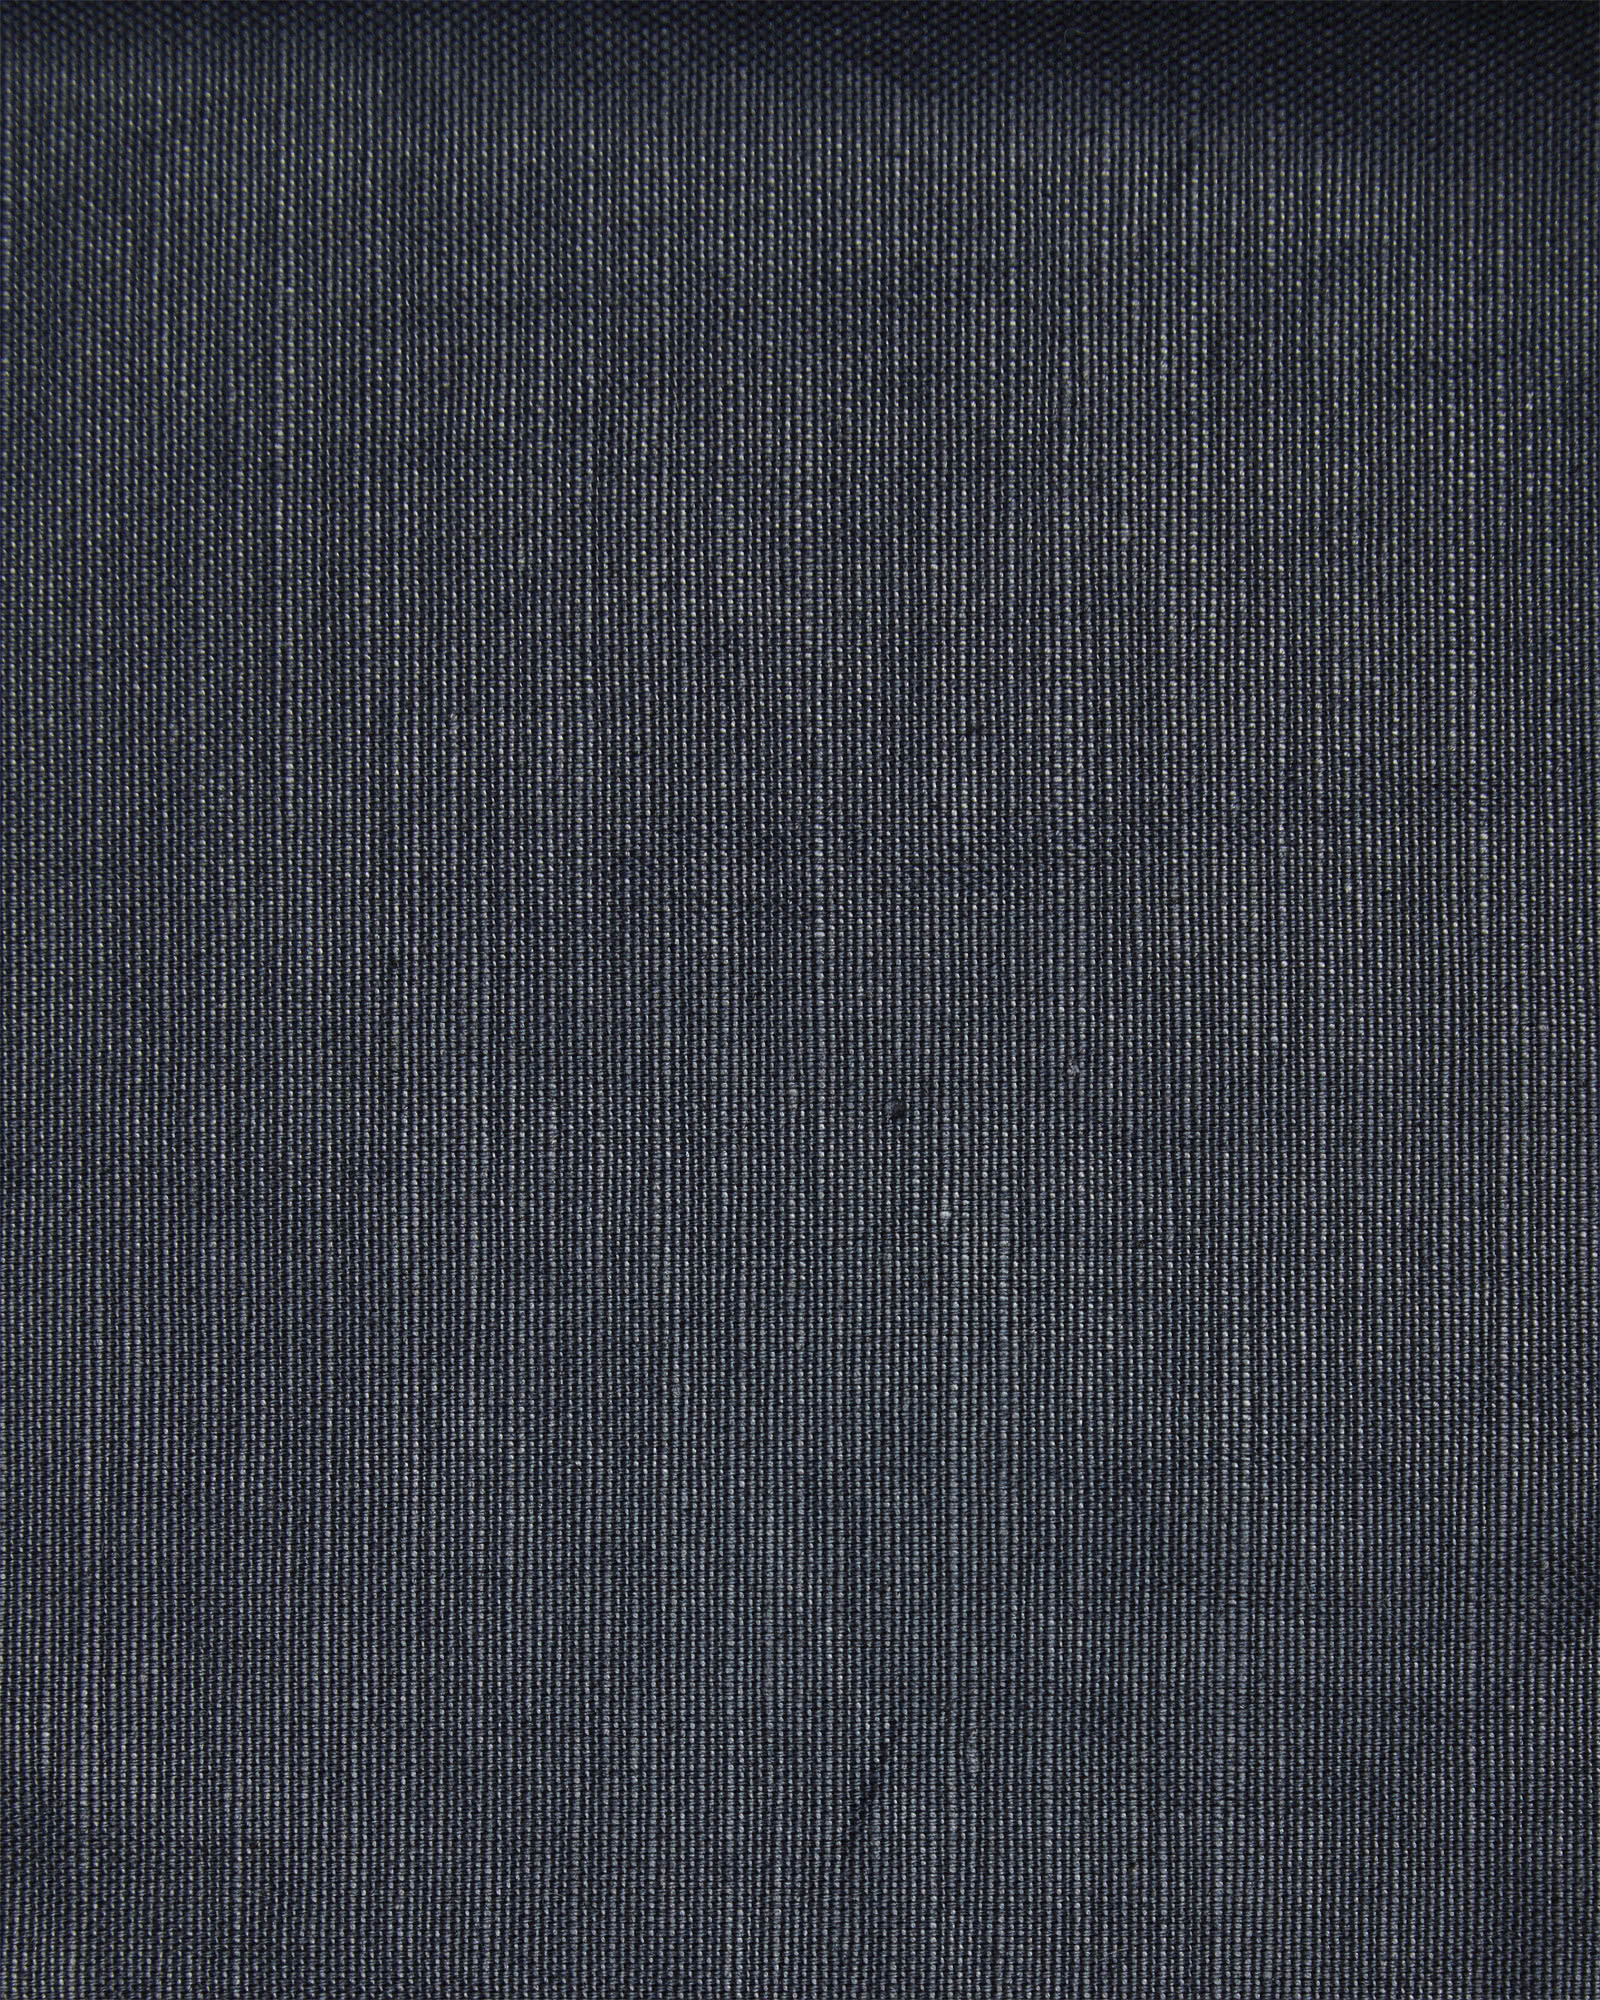 Glazed Cotton / Linen Blend - Navy,